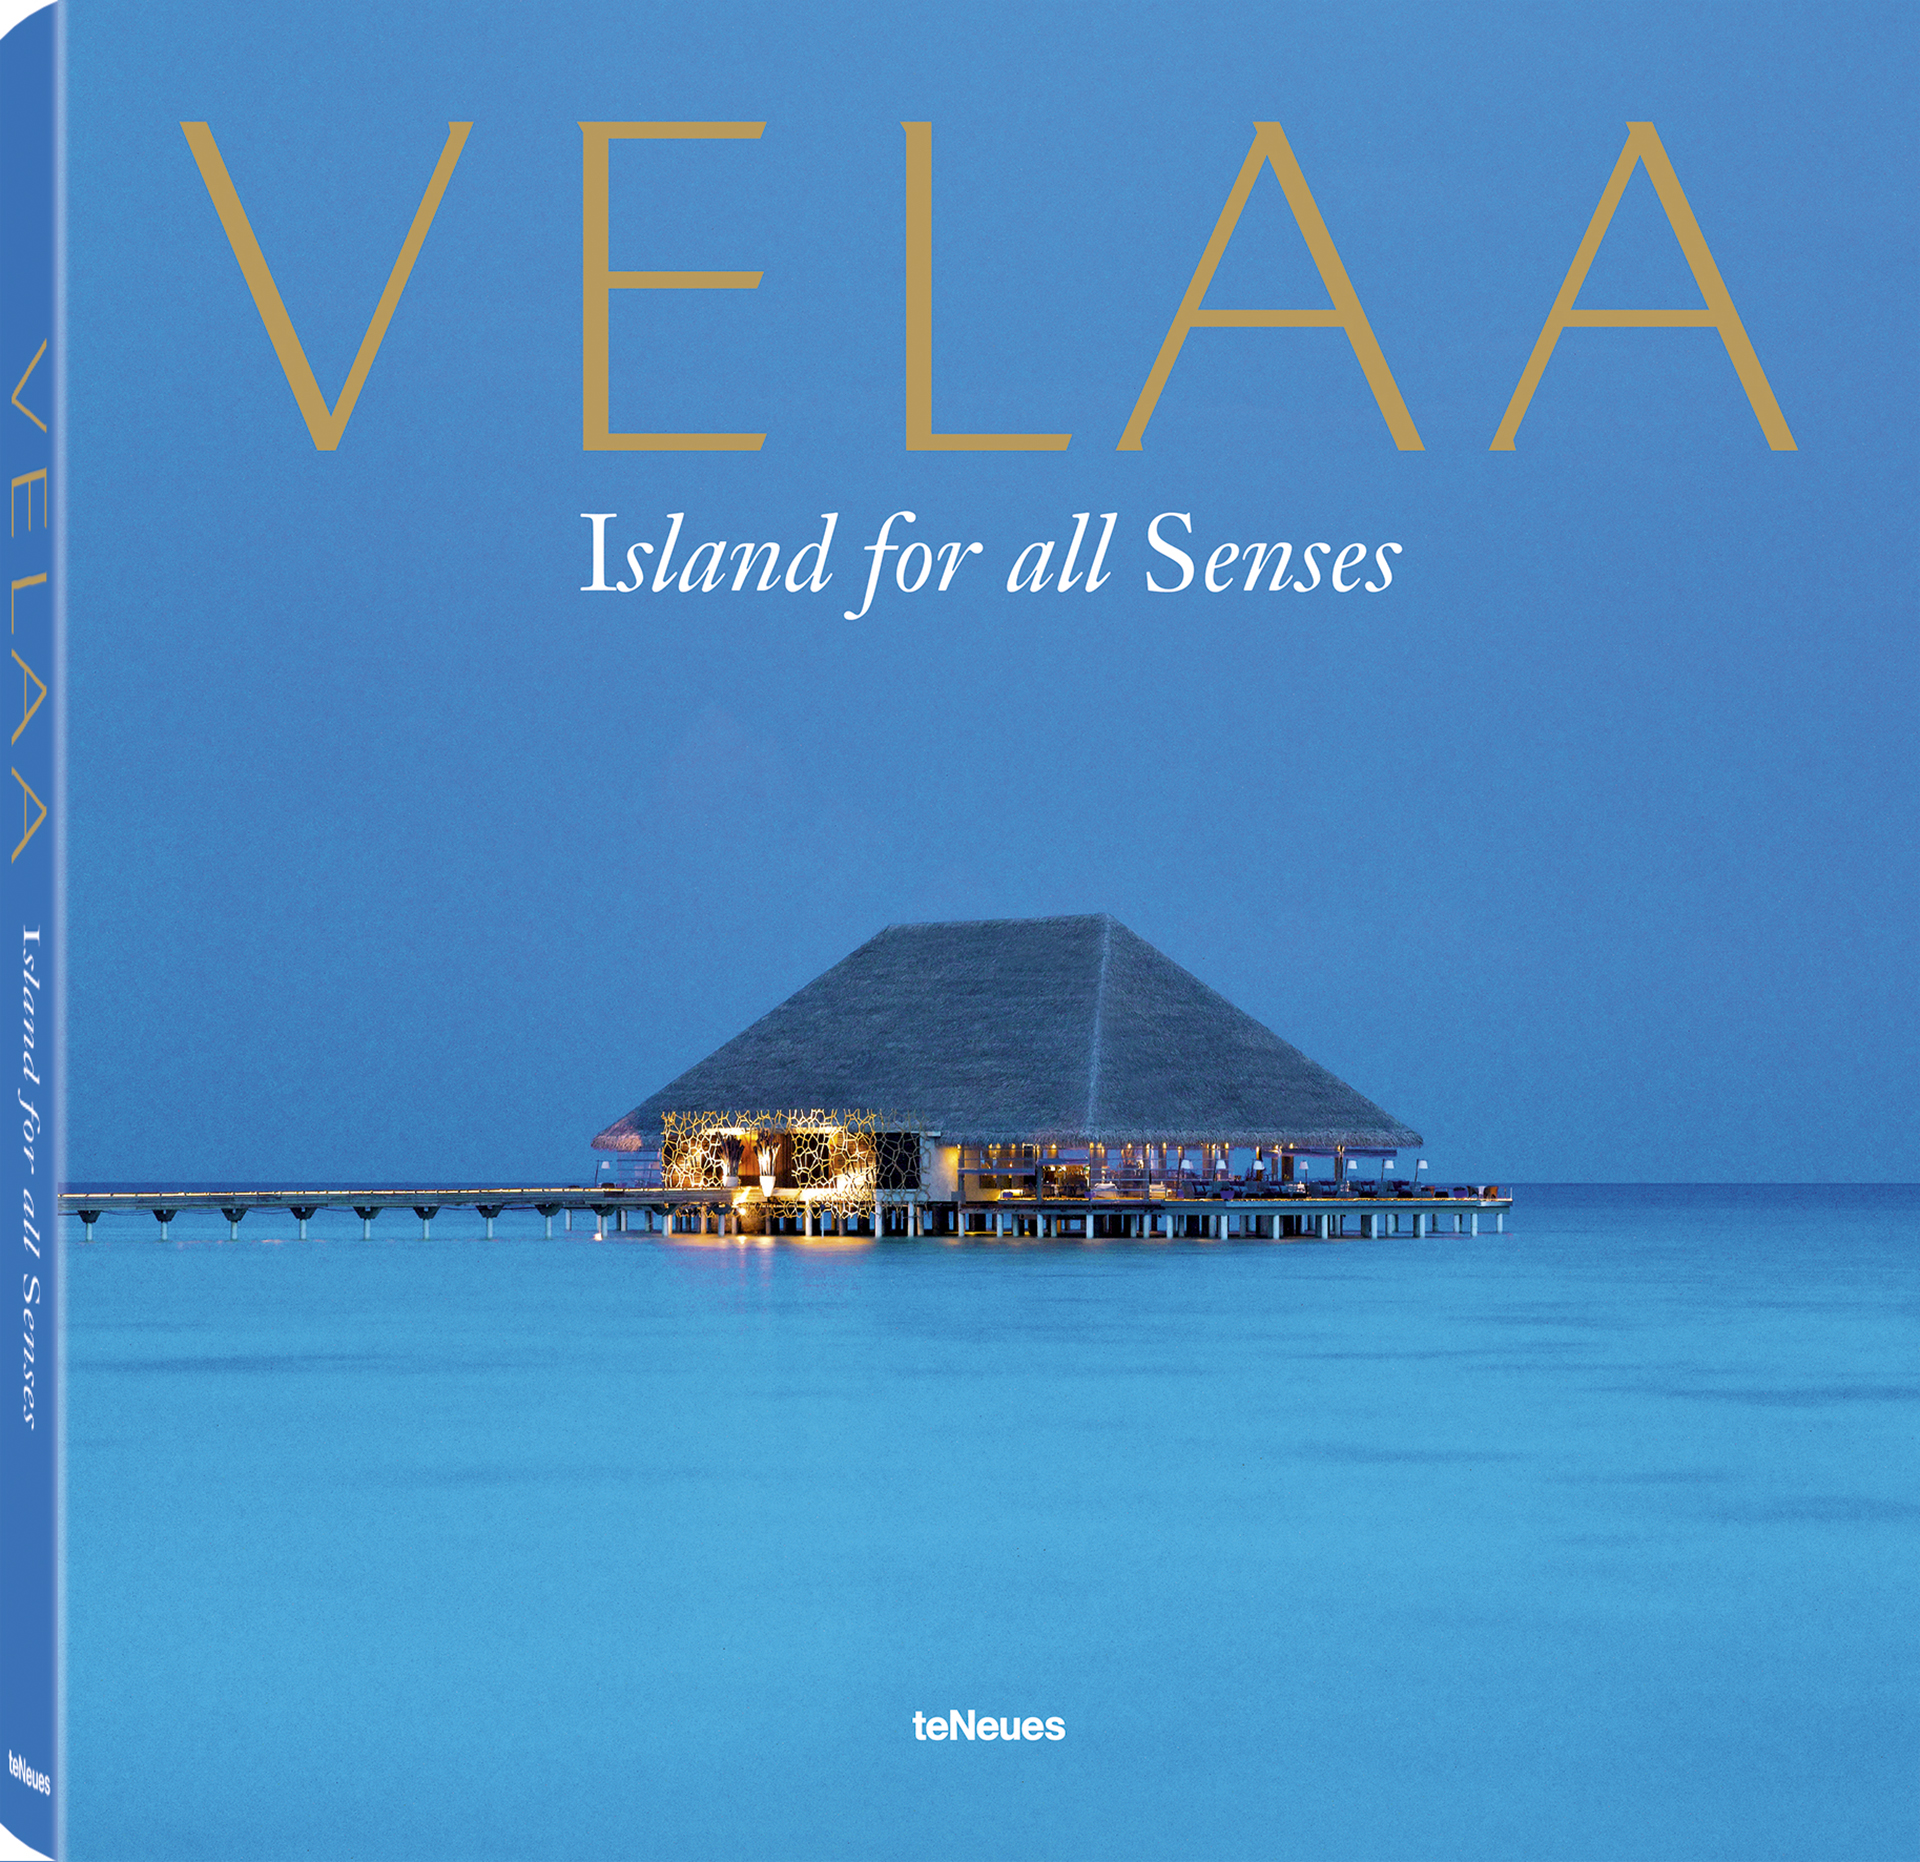 Velaa - Corporate Publishing